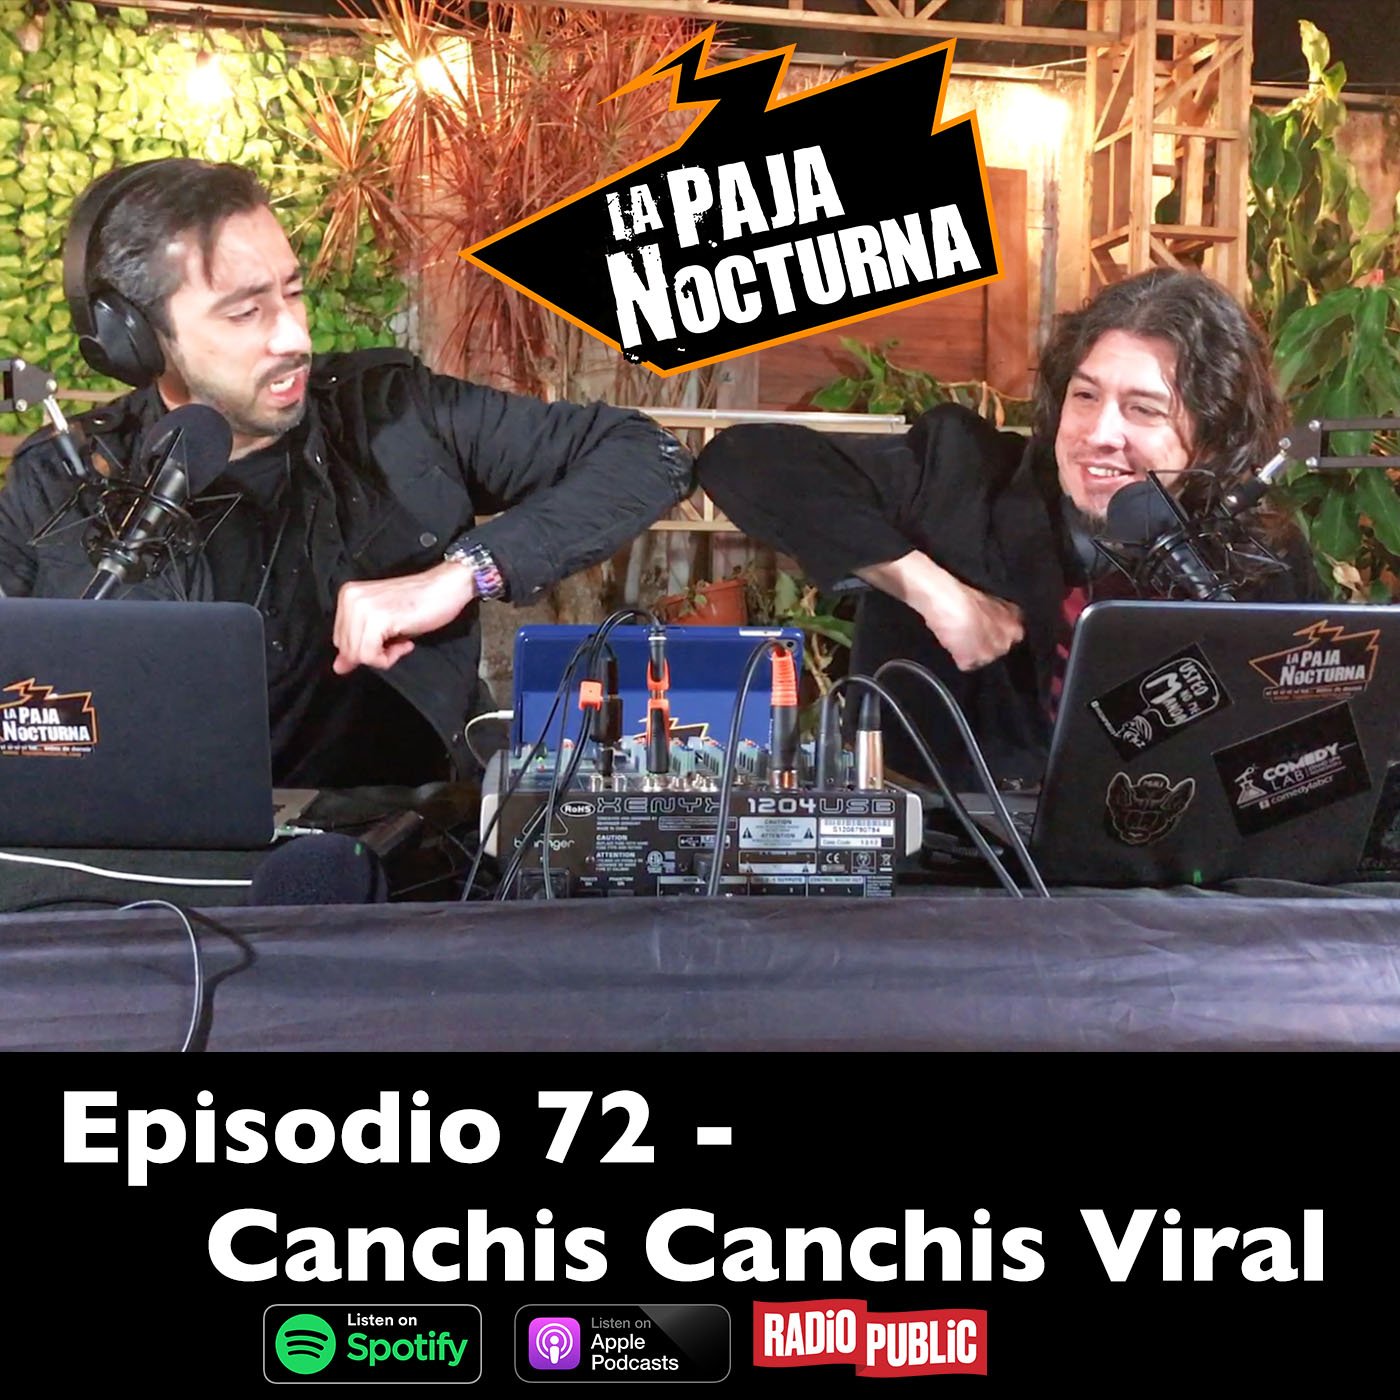 La paja nocturna podcast Episodio 72